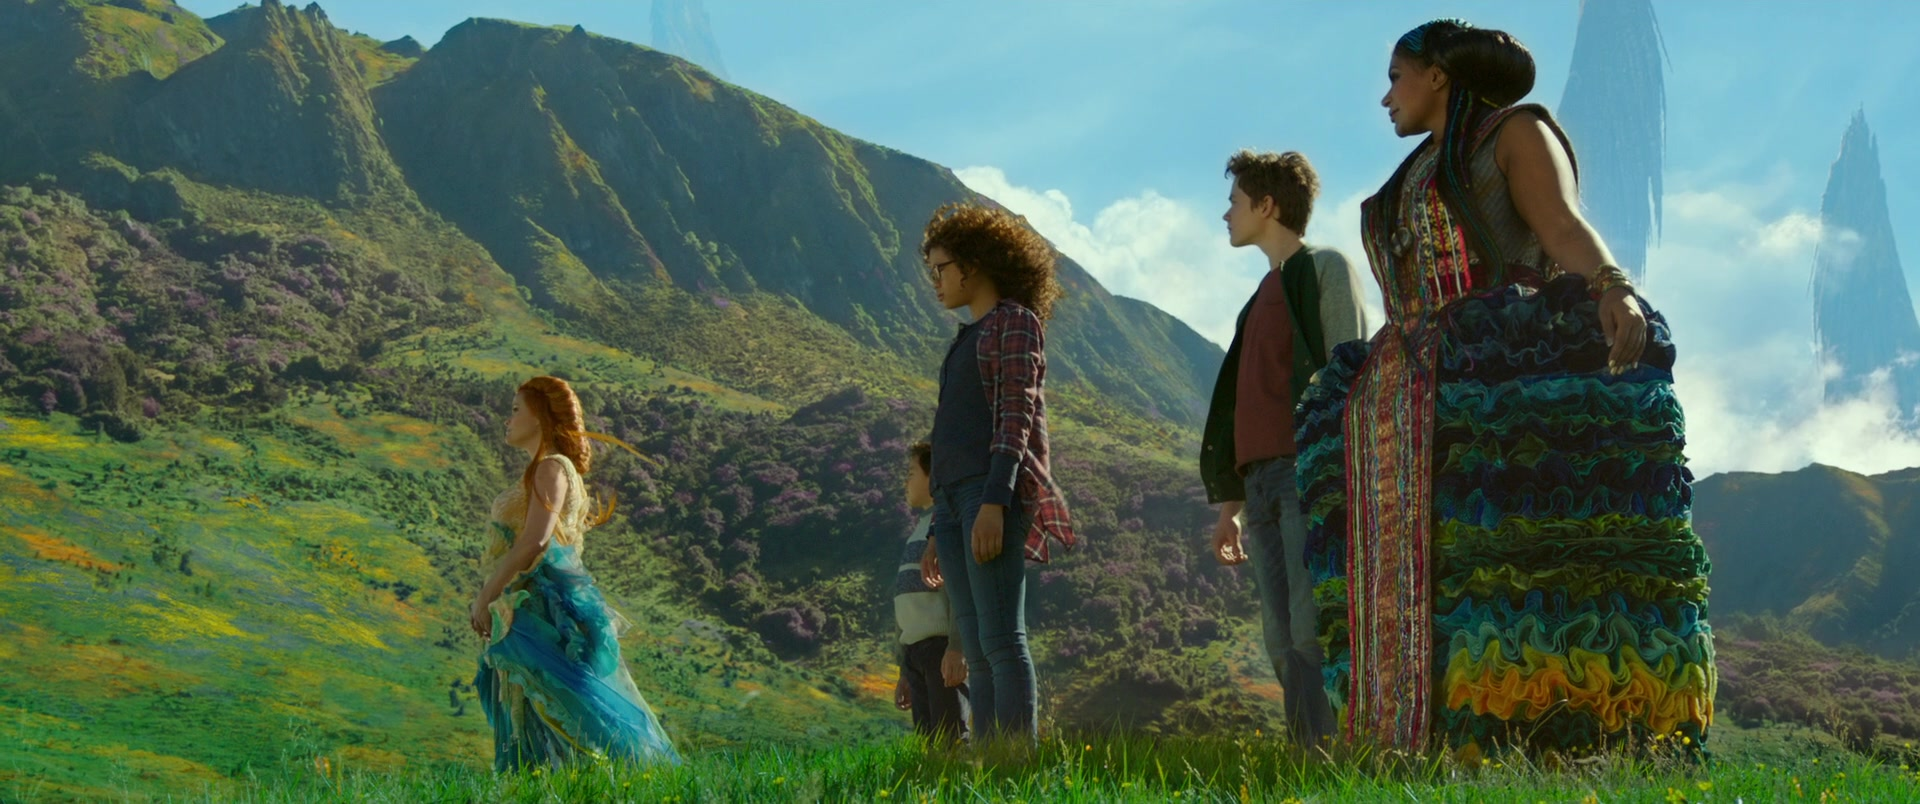 screencap from a wrinkle in time movie with characters standing in a field facing left